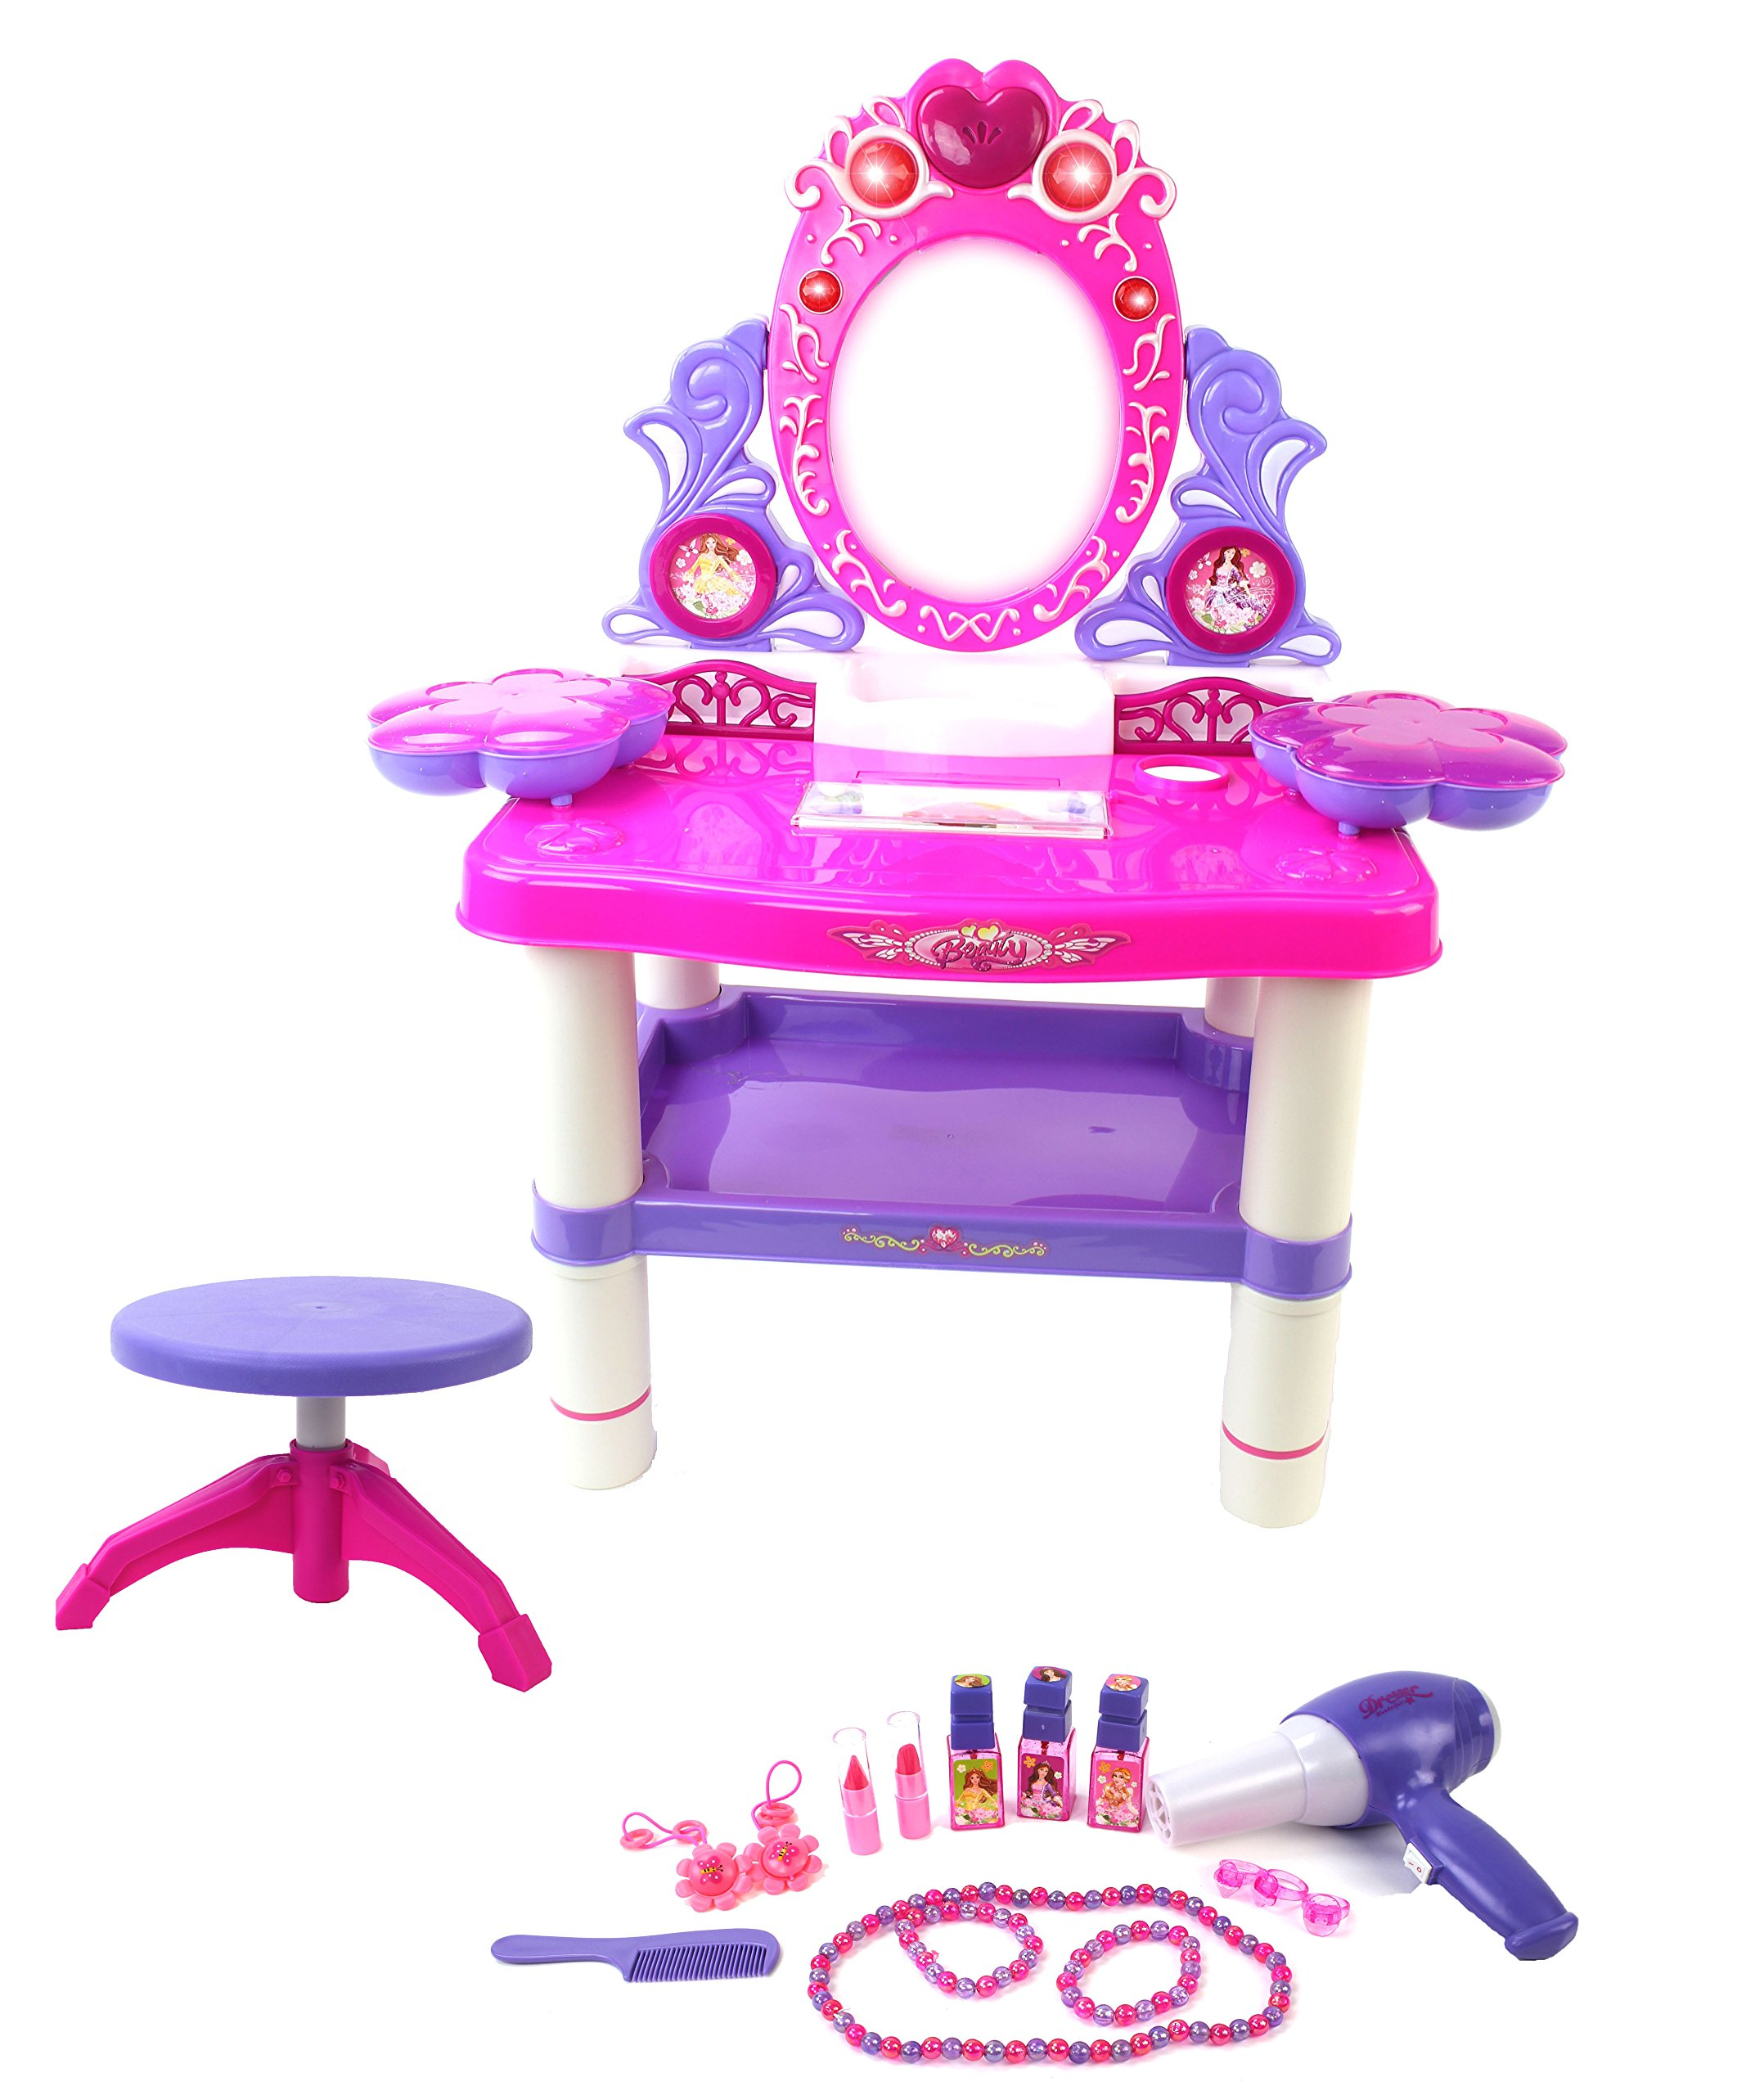 Battery Operated Princess Toy Vanity Mirror Dresser Playset w/ Lights, Sounds, Chair Stool, Toy Jewelry & Accessories